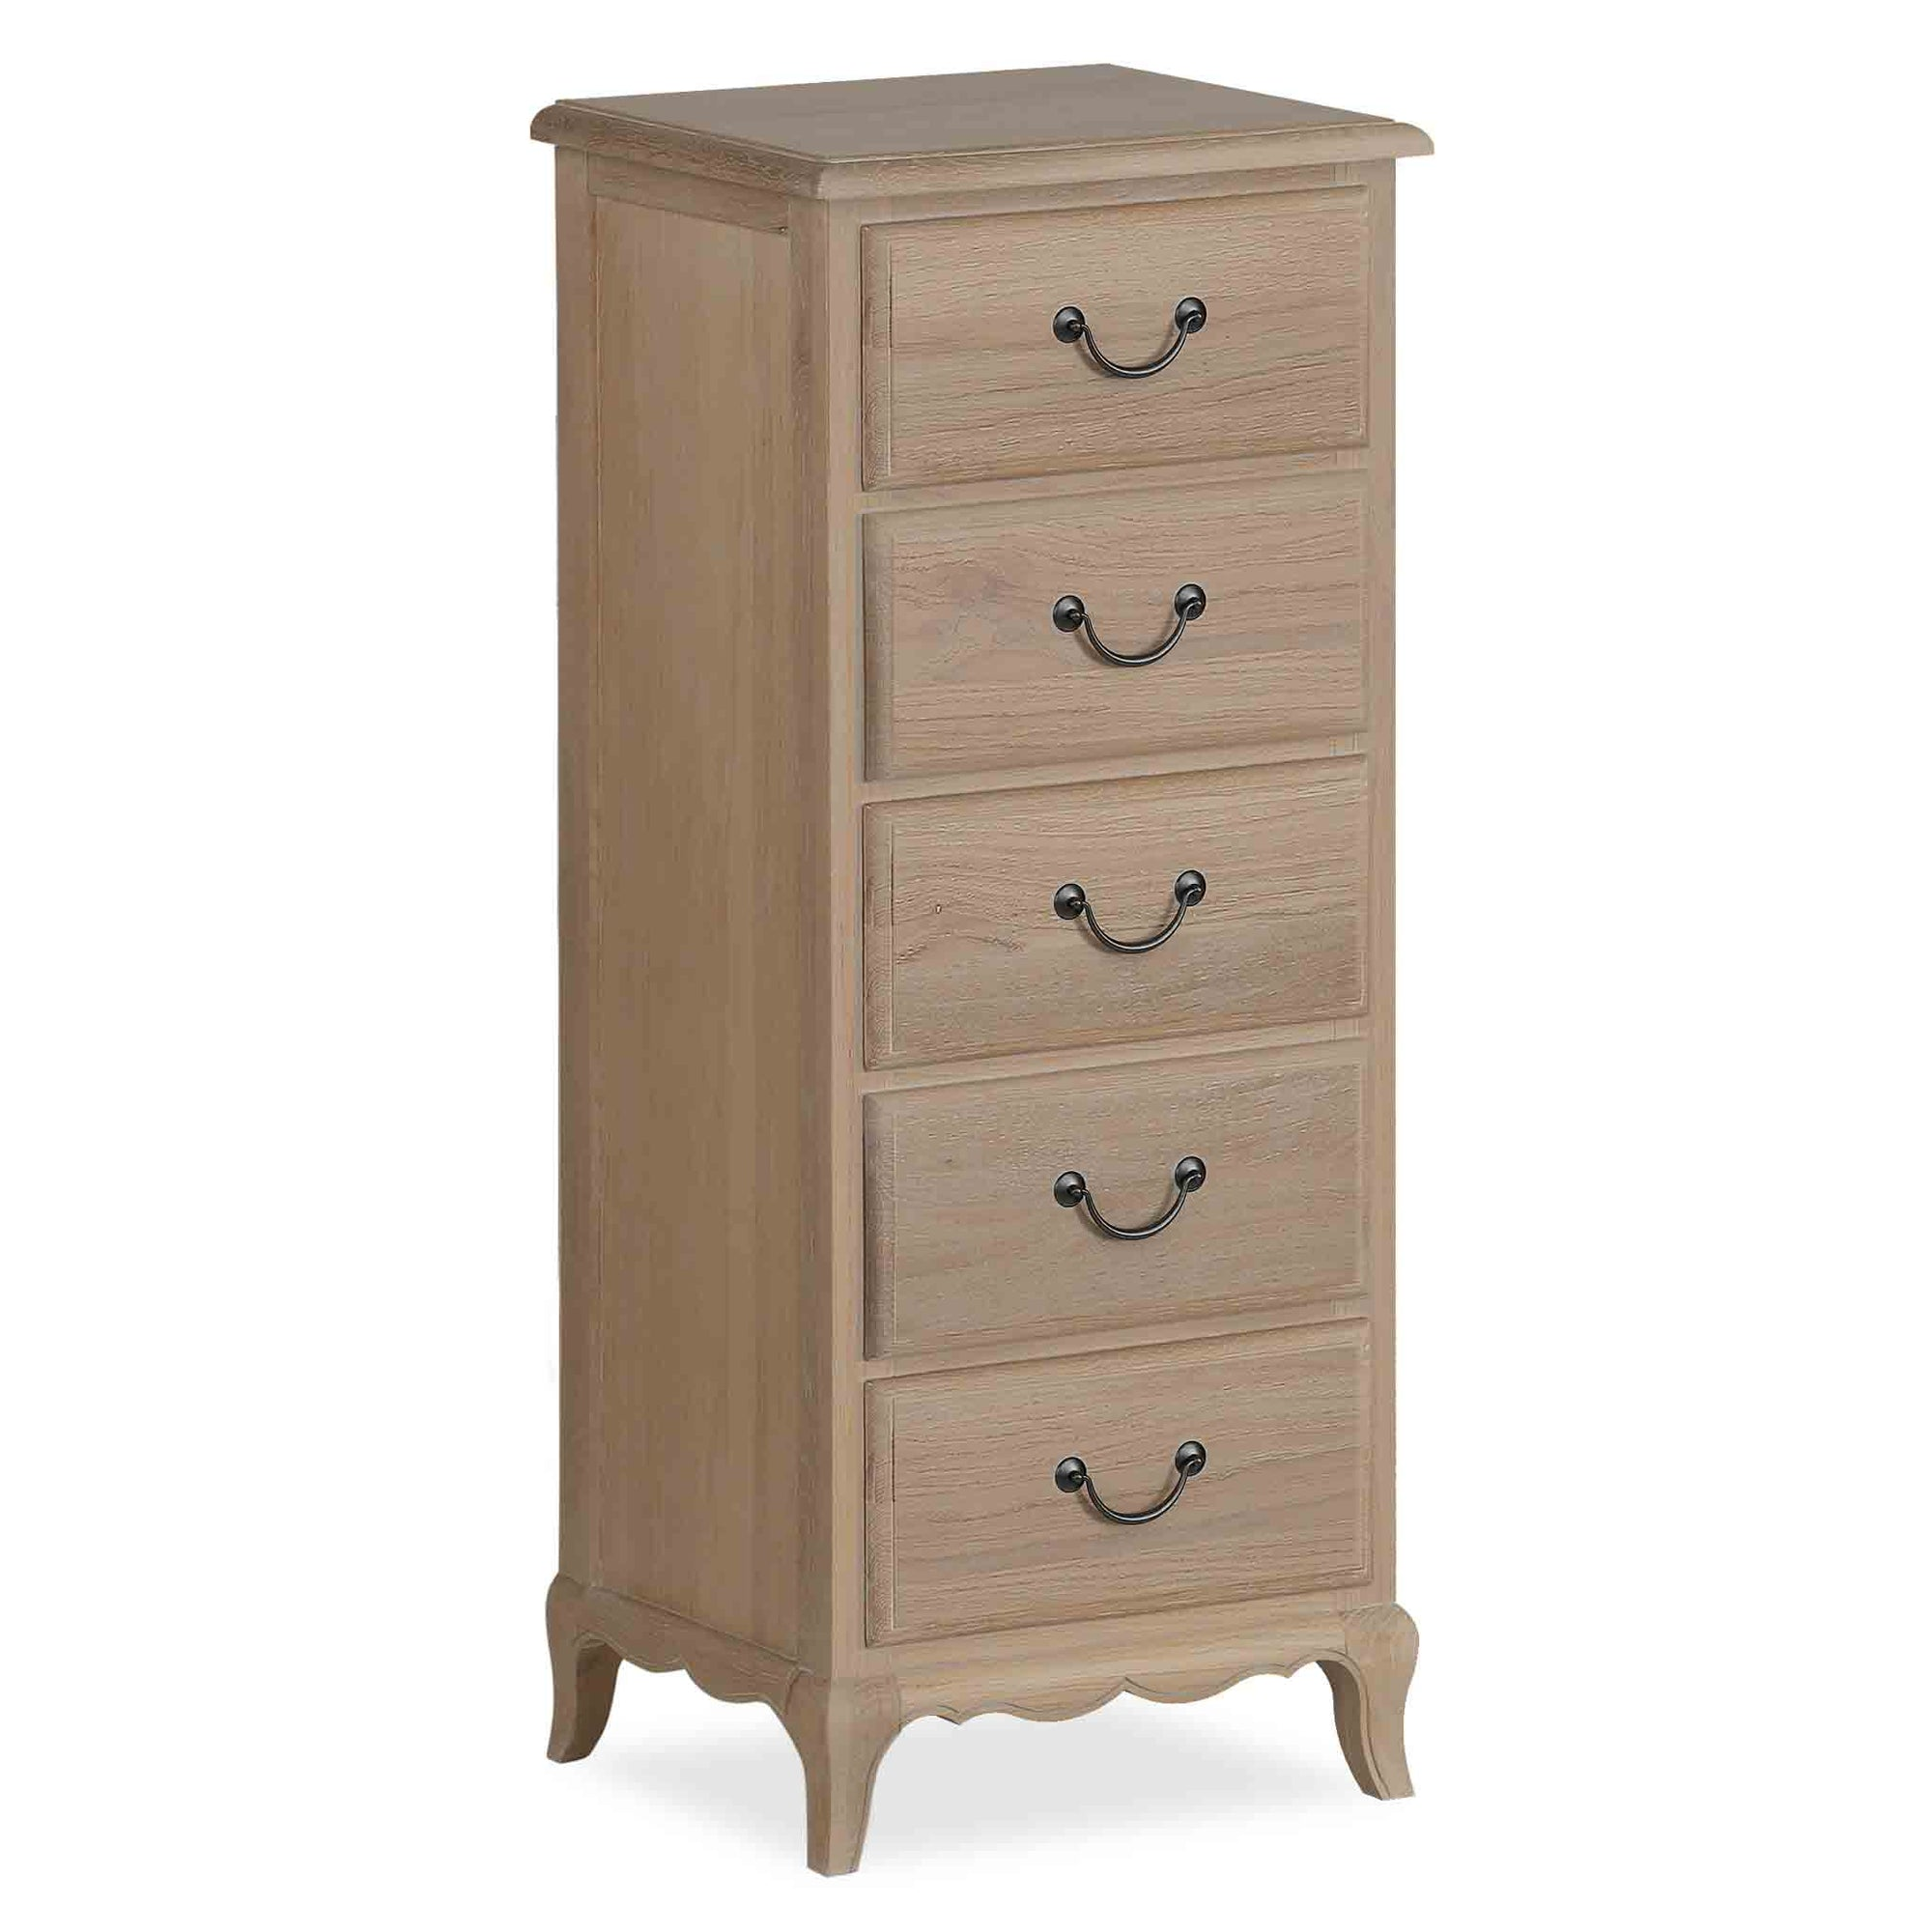 Harrogate Oak French Style Tallboy Chest from Roseland Furniture